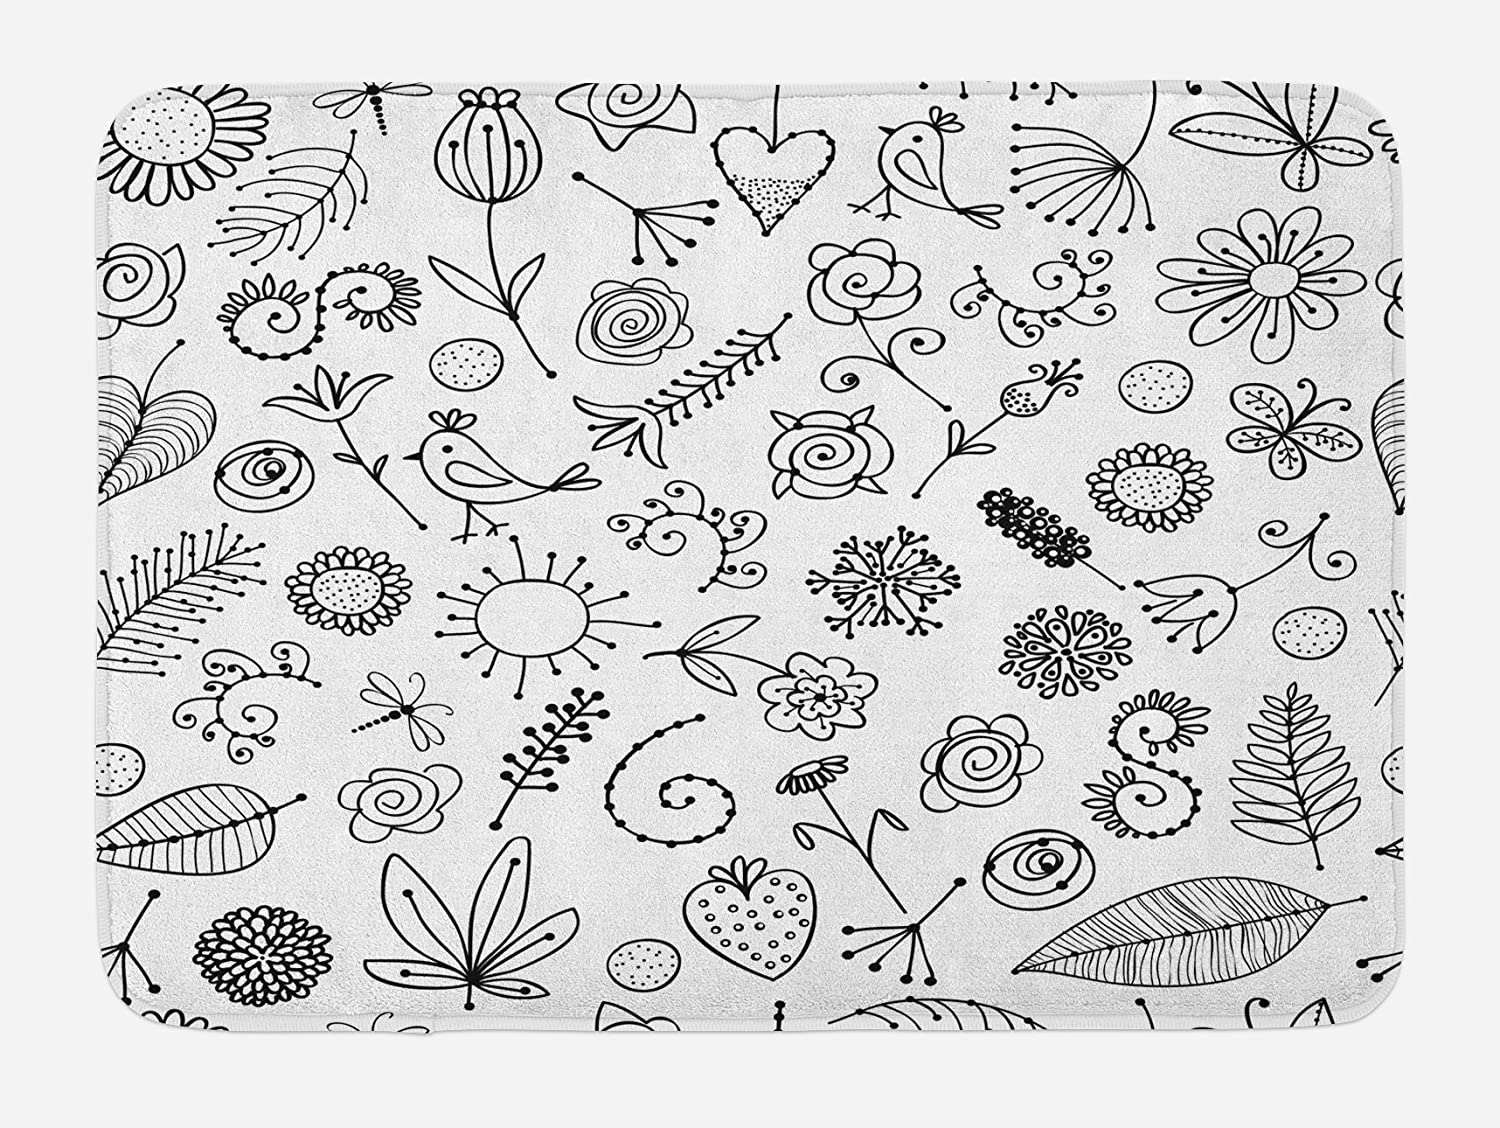 Ambesonne Leaf Bath Mat, Things from Nature in Sketch Form Birds Flowers Strawberry Sunflower Ferns Print, Plush Bathroom Decor Mat with Non Slip Backing, 29.5